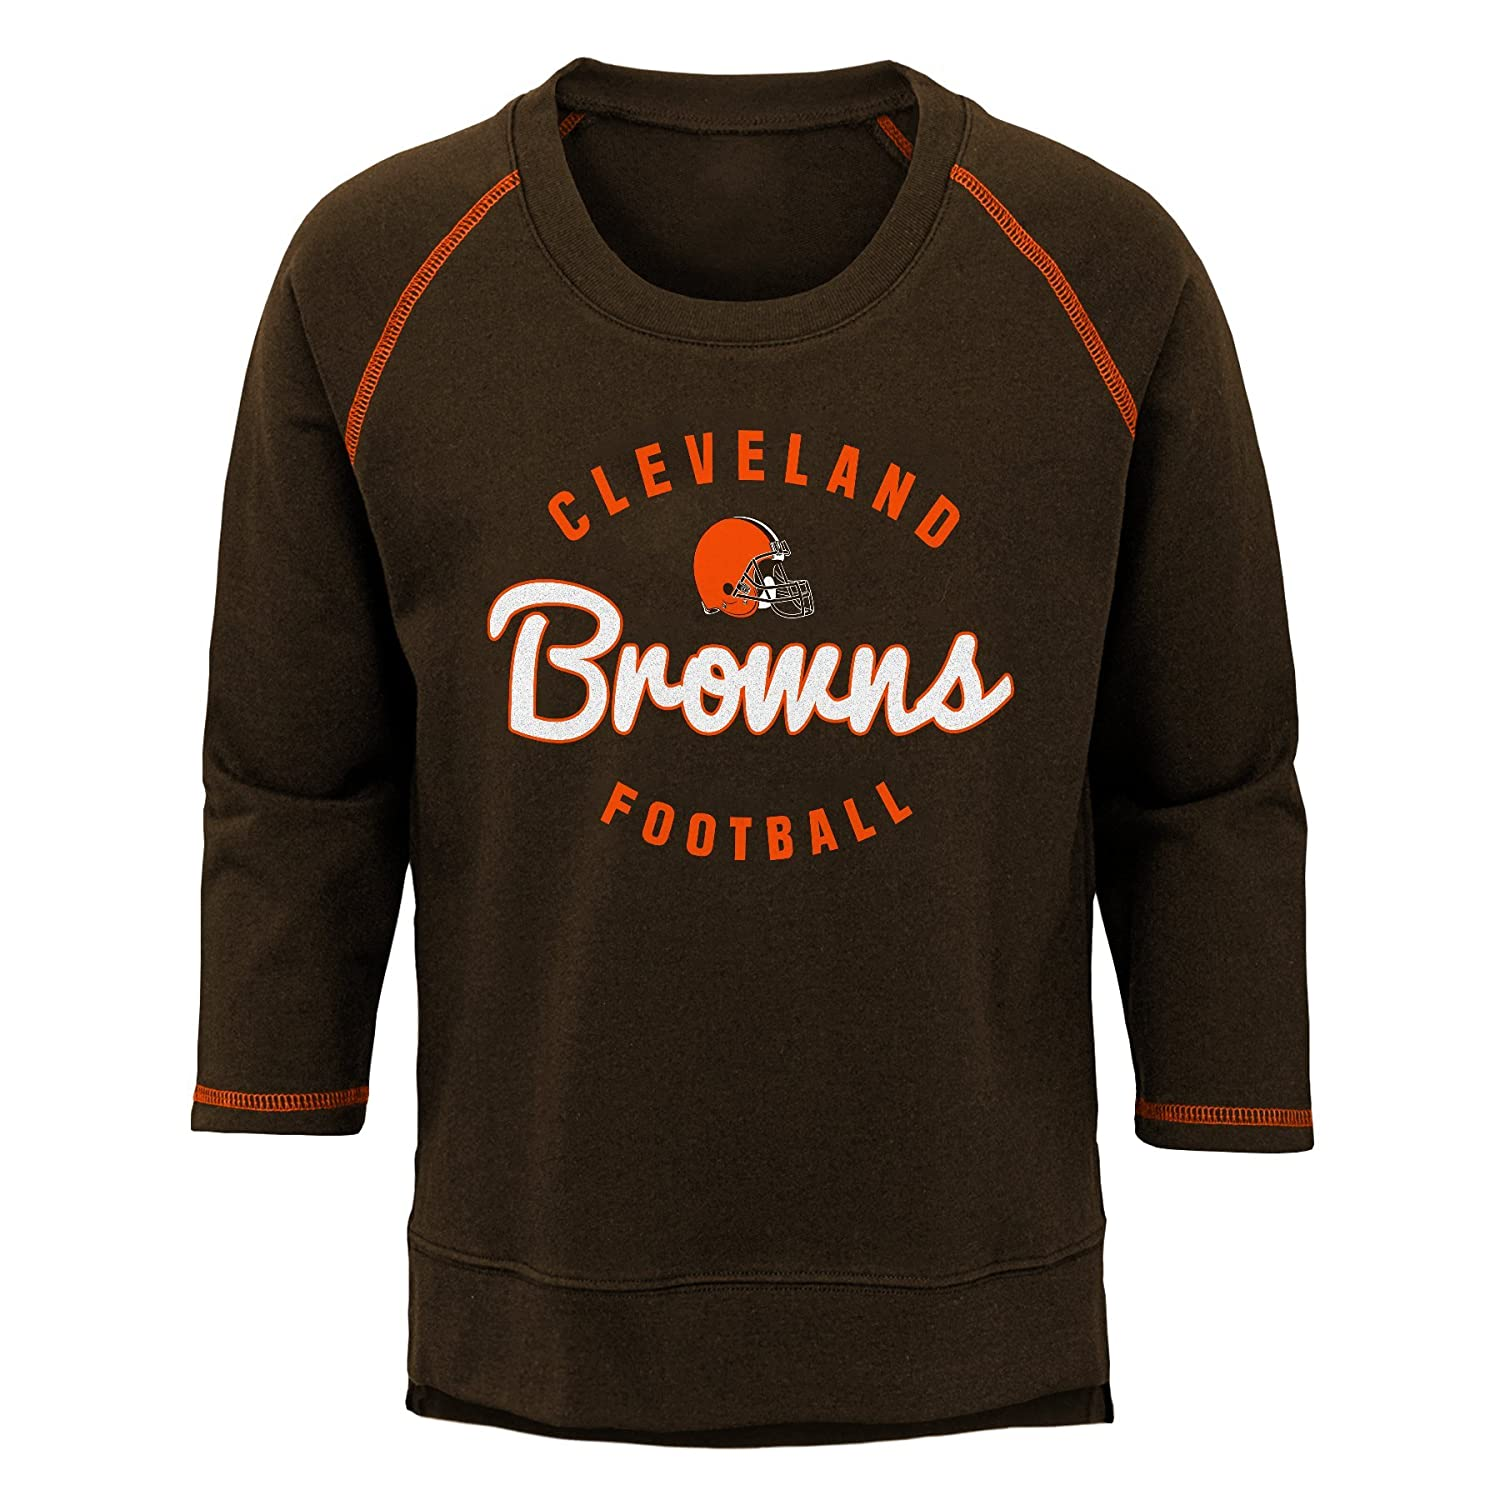 NFL Cleveland Browns Youth Boys Overthrow Pullover Top Brown Suede Youth Medium 10-12